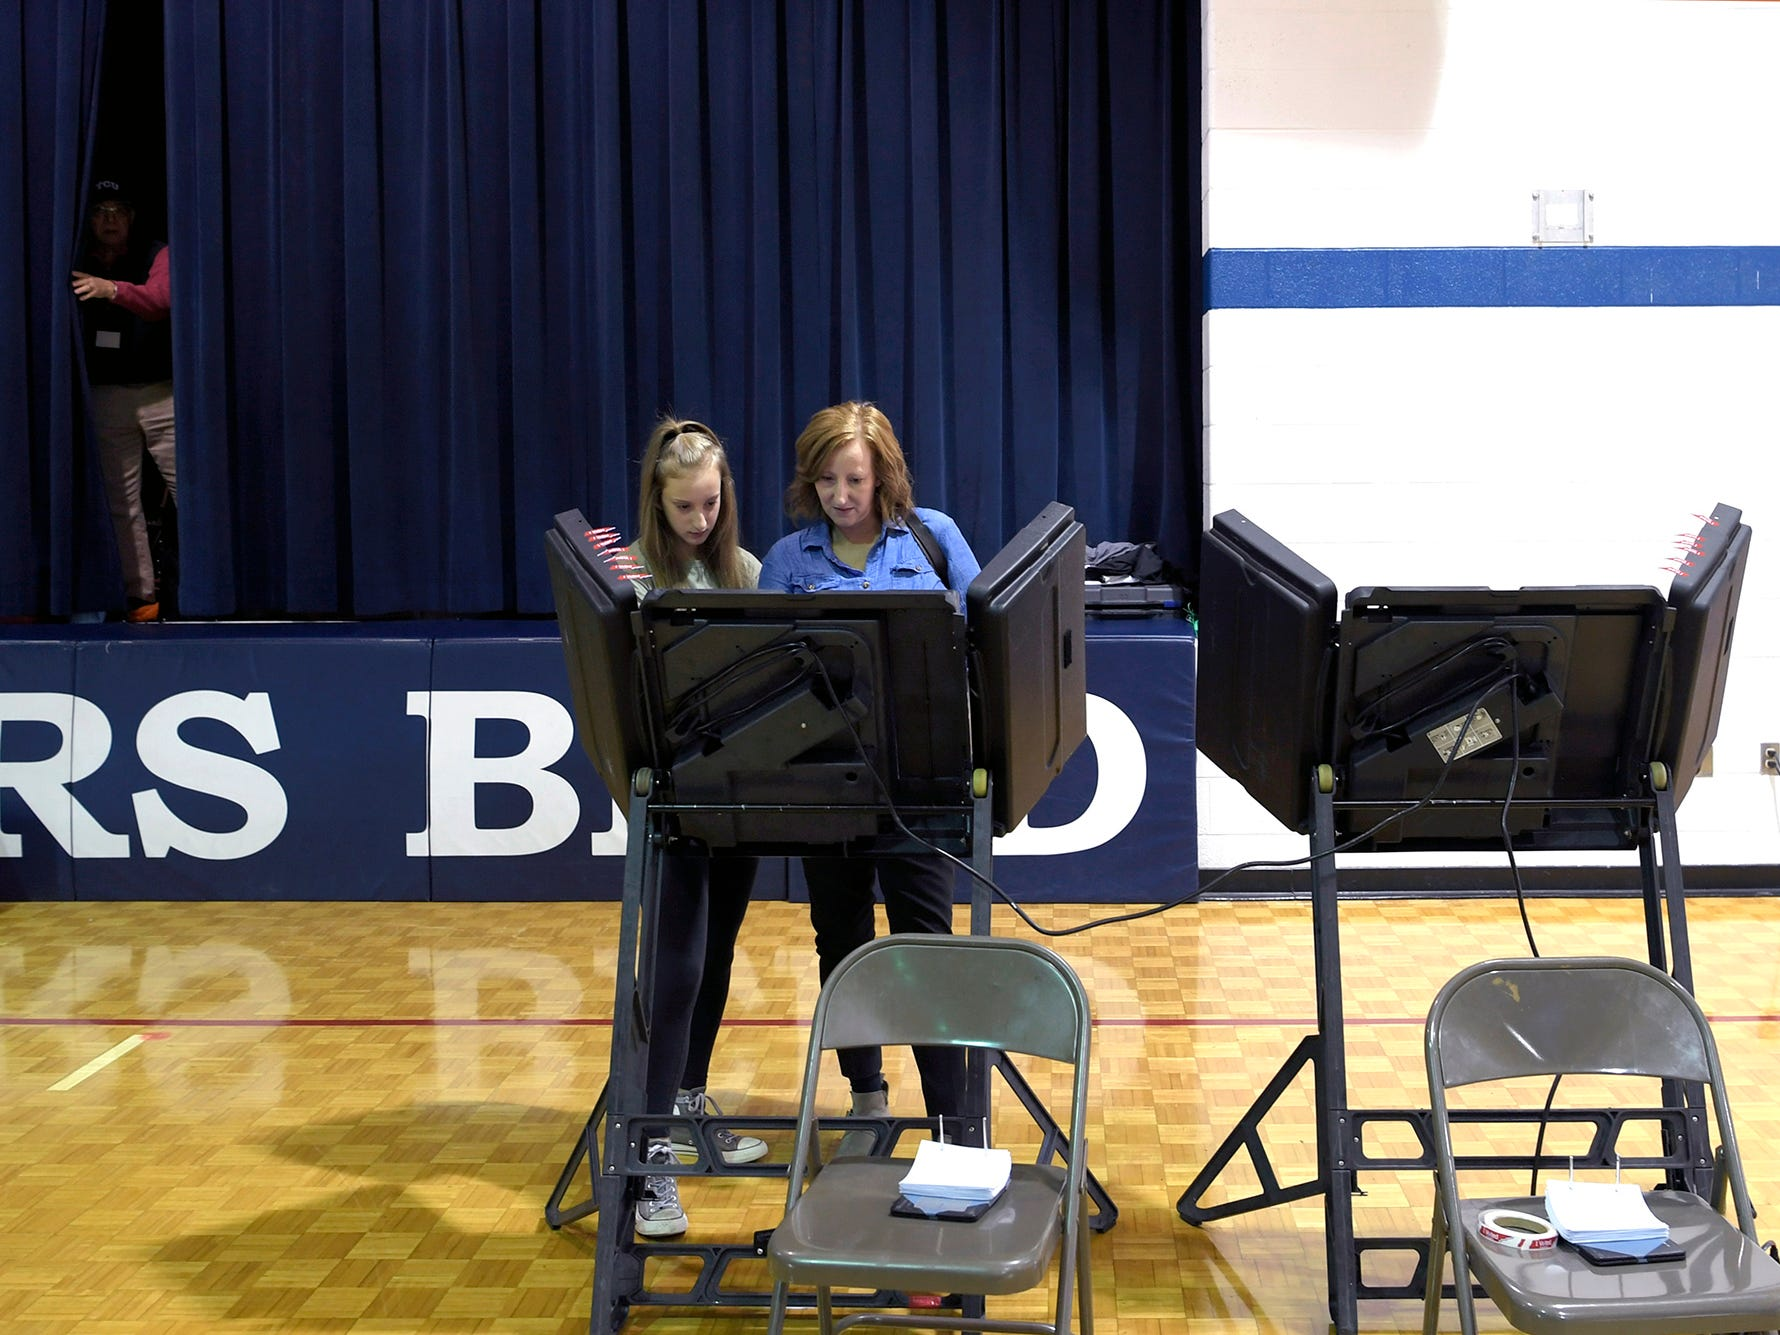 Karen Litwin of Franklin votes with her daughter Lucy,14, by her side at Hunters Bend Elementary School in Franklin on Tuesday, Nov. 6, 2018.